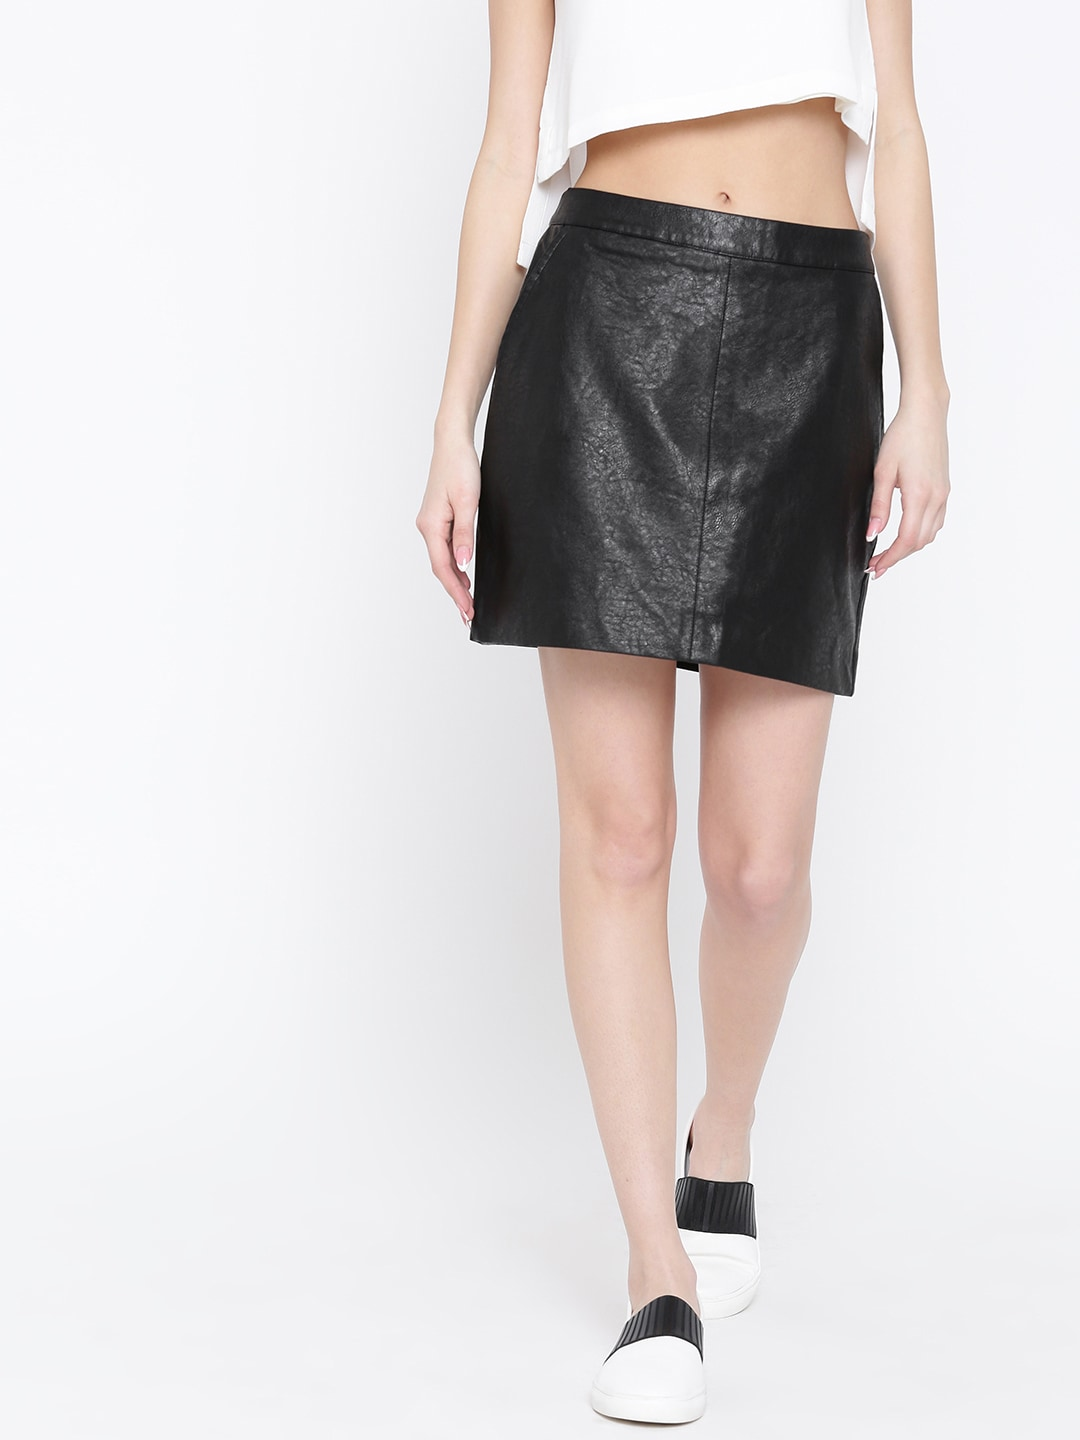 Leather Skirt - Buy Leather Skirt online in India